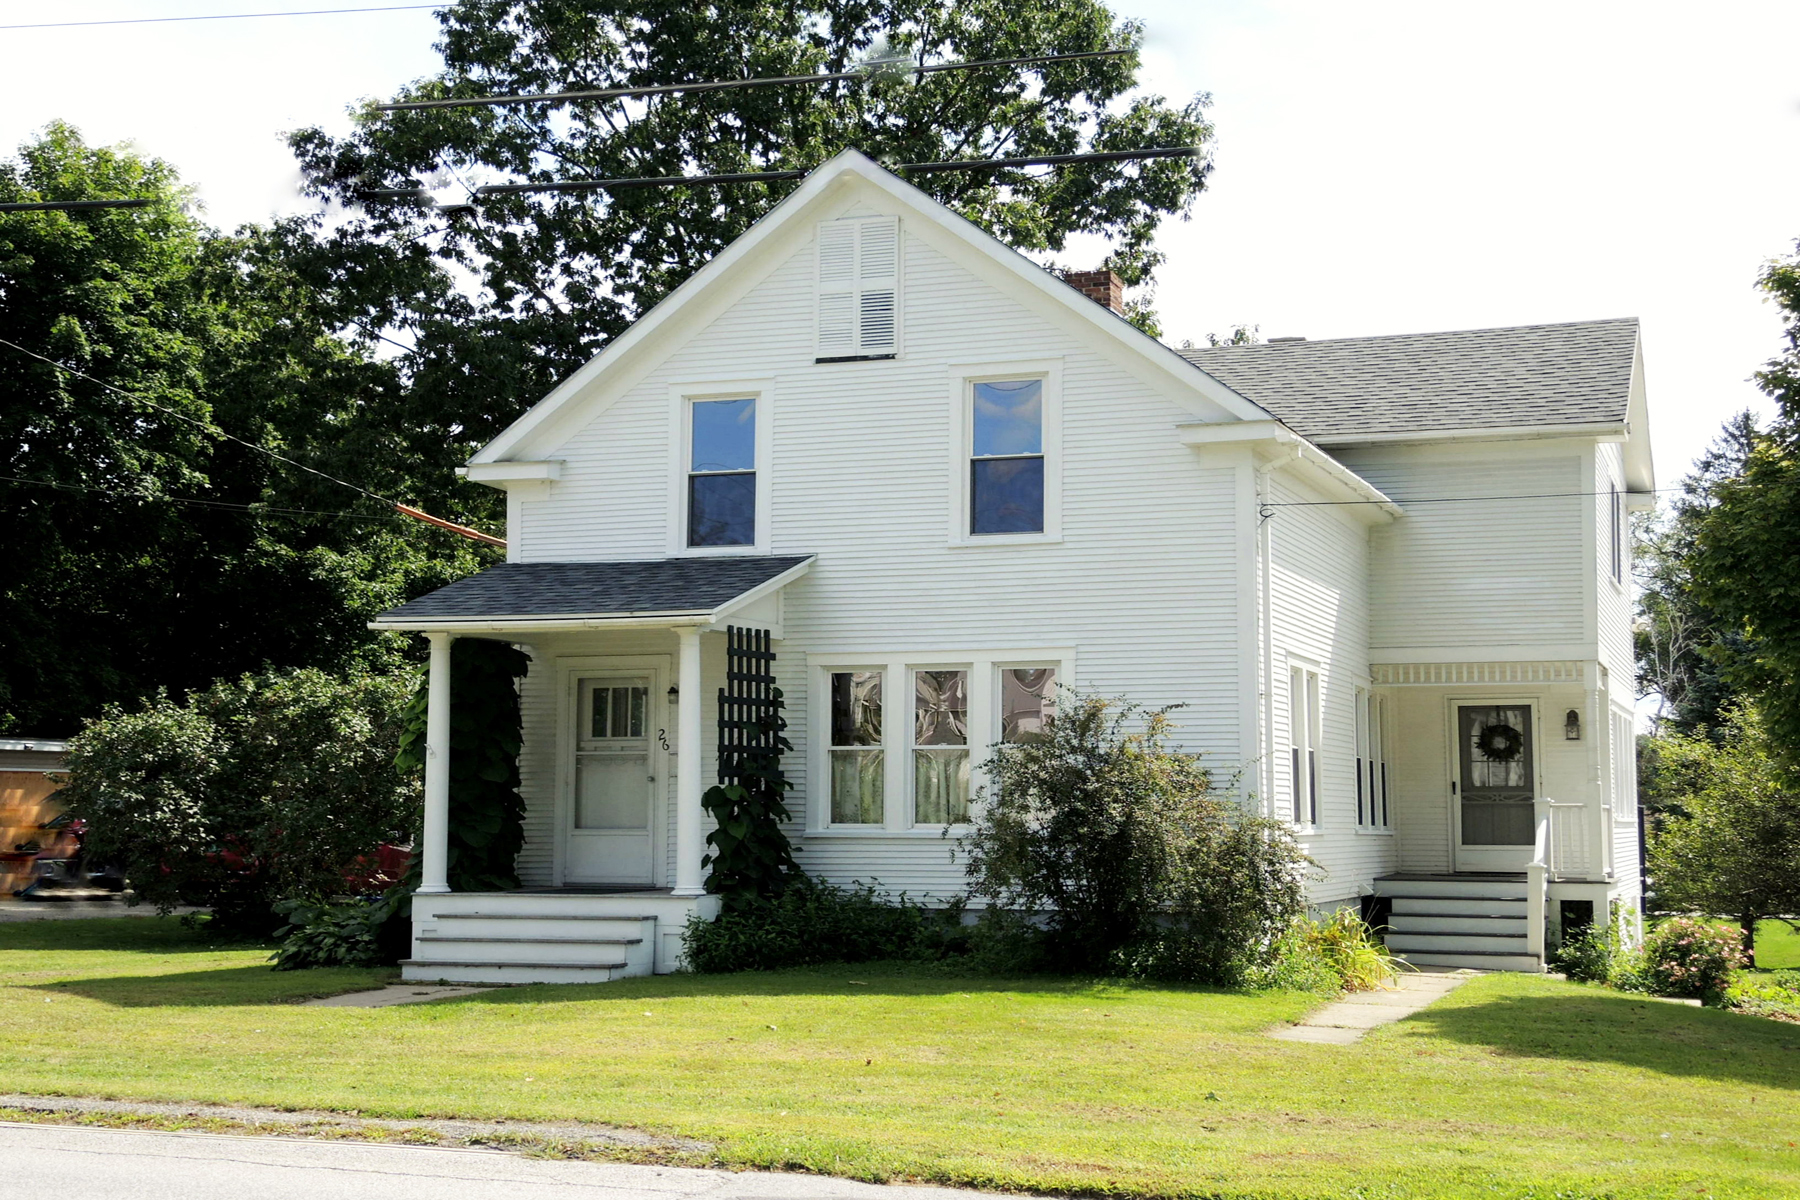 Single Family Homes for Sale at Rutland City Home Sweet Home 26 Jackson Ave Rutland, Vermont 05701 United States